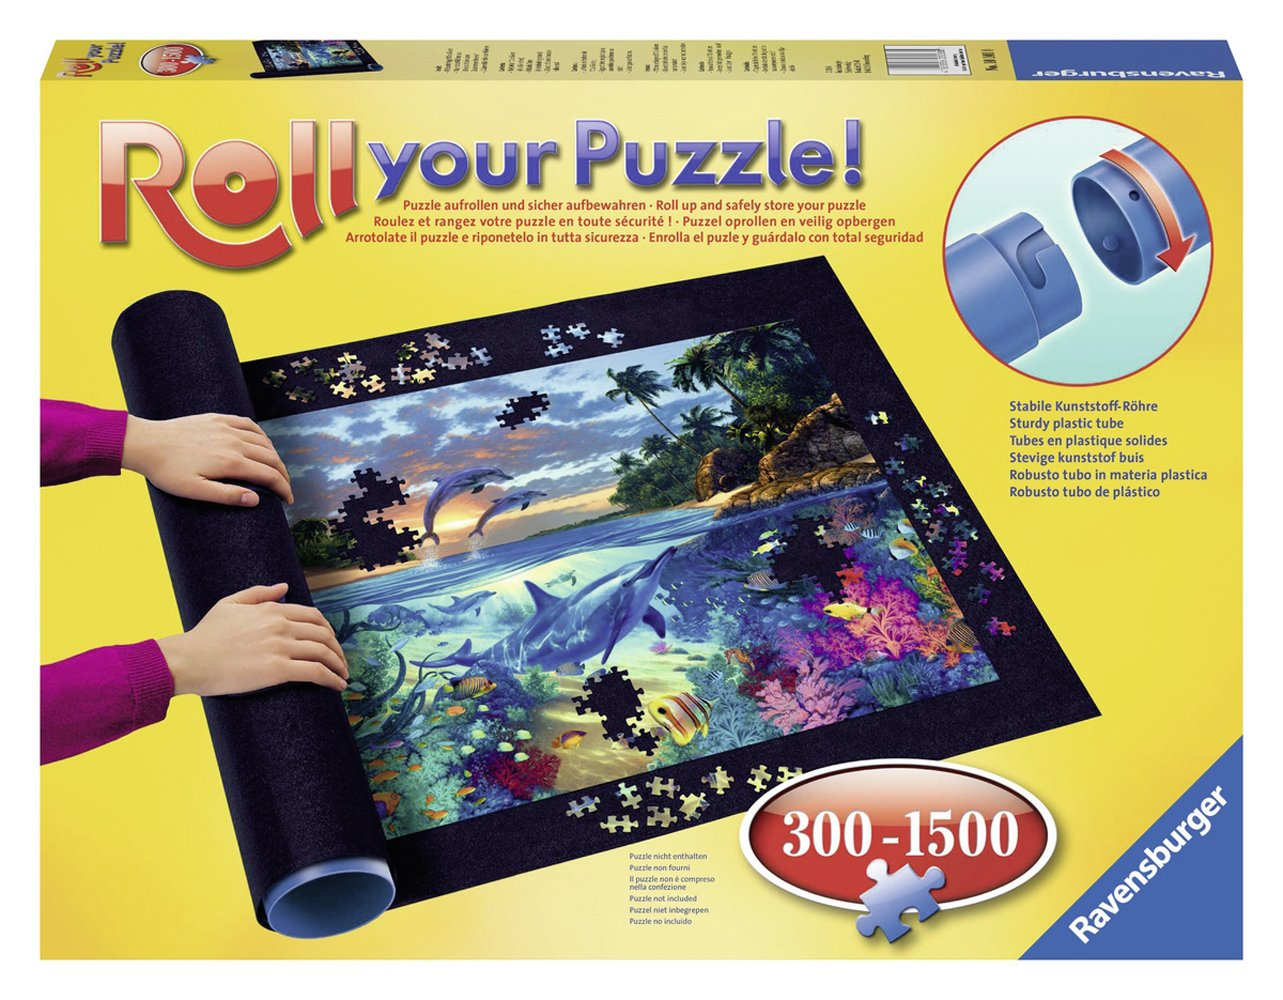 Ravensburger 17956 - Roll your Puzzle Puzzlematte: Amazon.de: Spielzeug